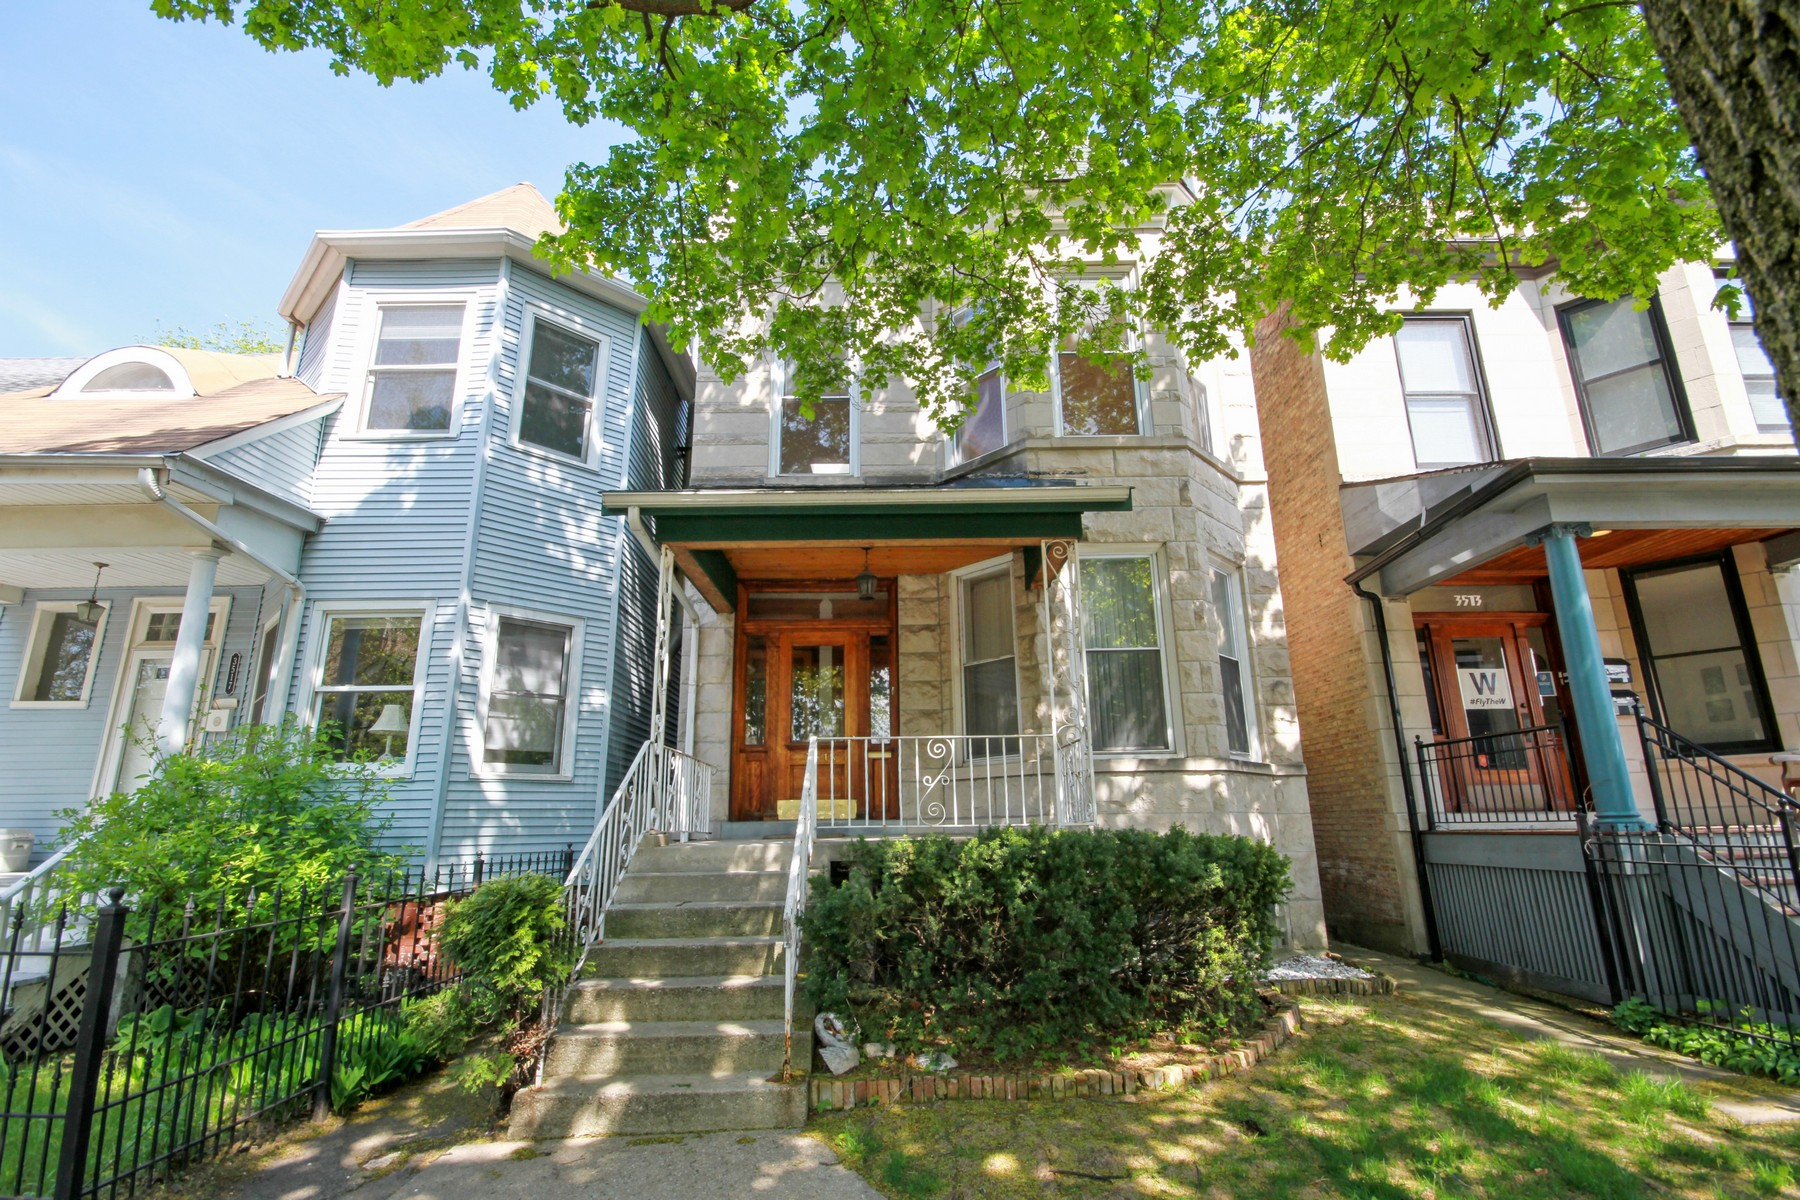 Multi-Family Home for Sale at 2-Flat Greystone in Lakeview 3515 N Marshfield Avenue Chicago, Illinois, 60657 United States